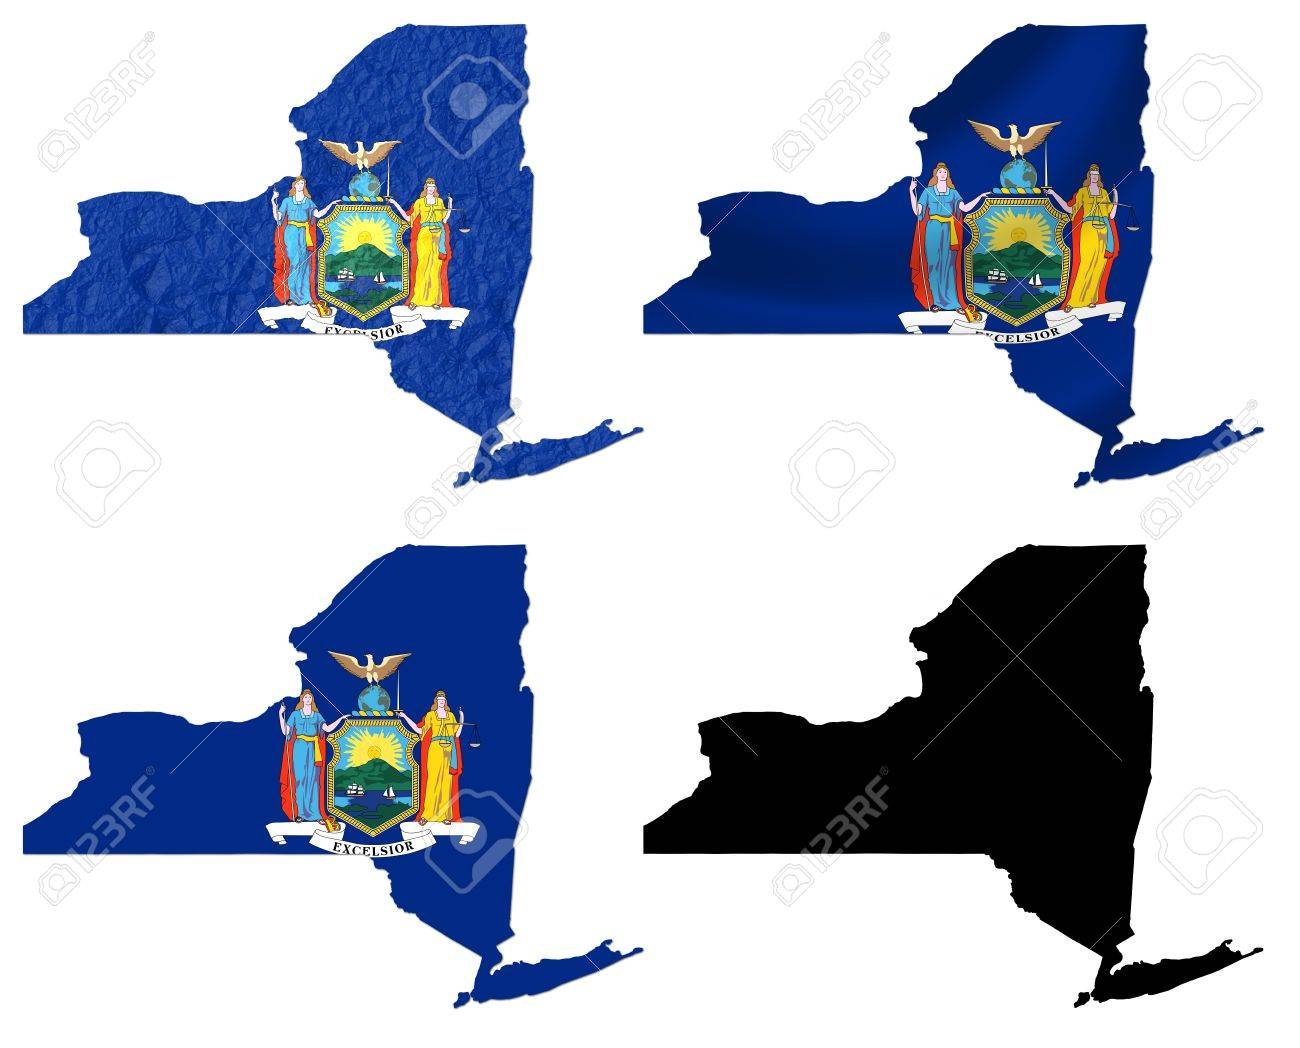 Us Map Photo Collage.Us New York State Flag Over Map Collage Stock Photo Picture And